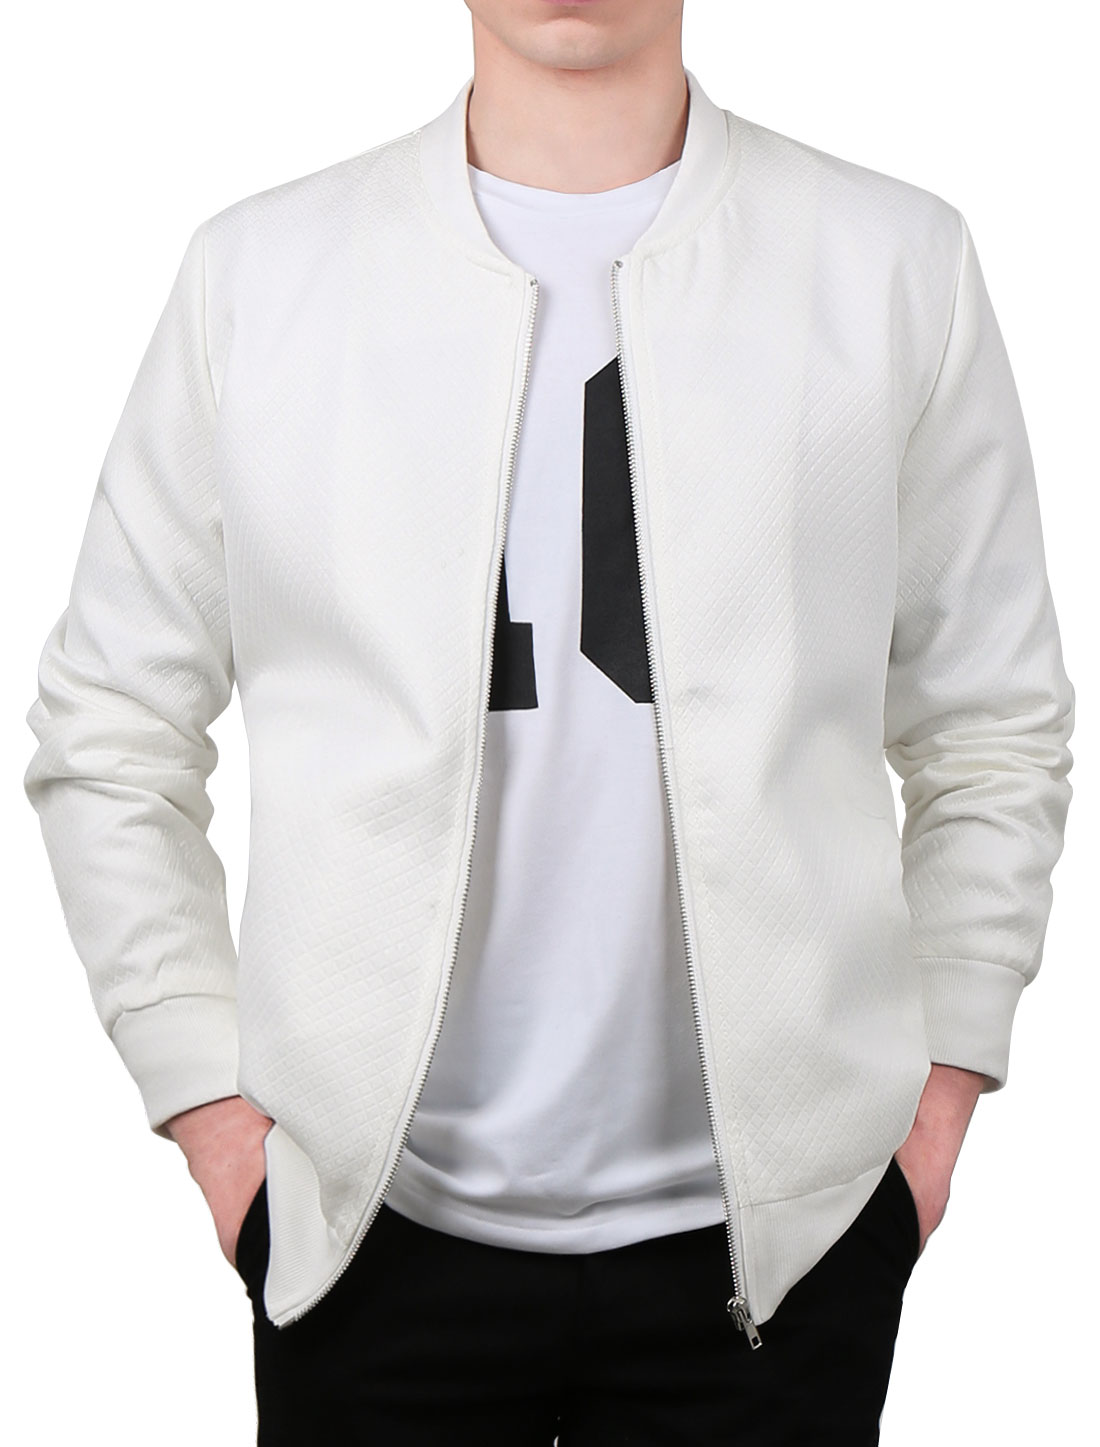 Men Long Sleeve Stand Collar Zipper Slant Pockets Leisure Jackets White S